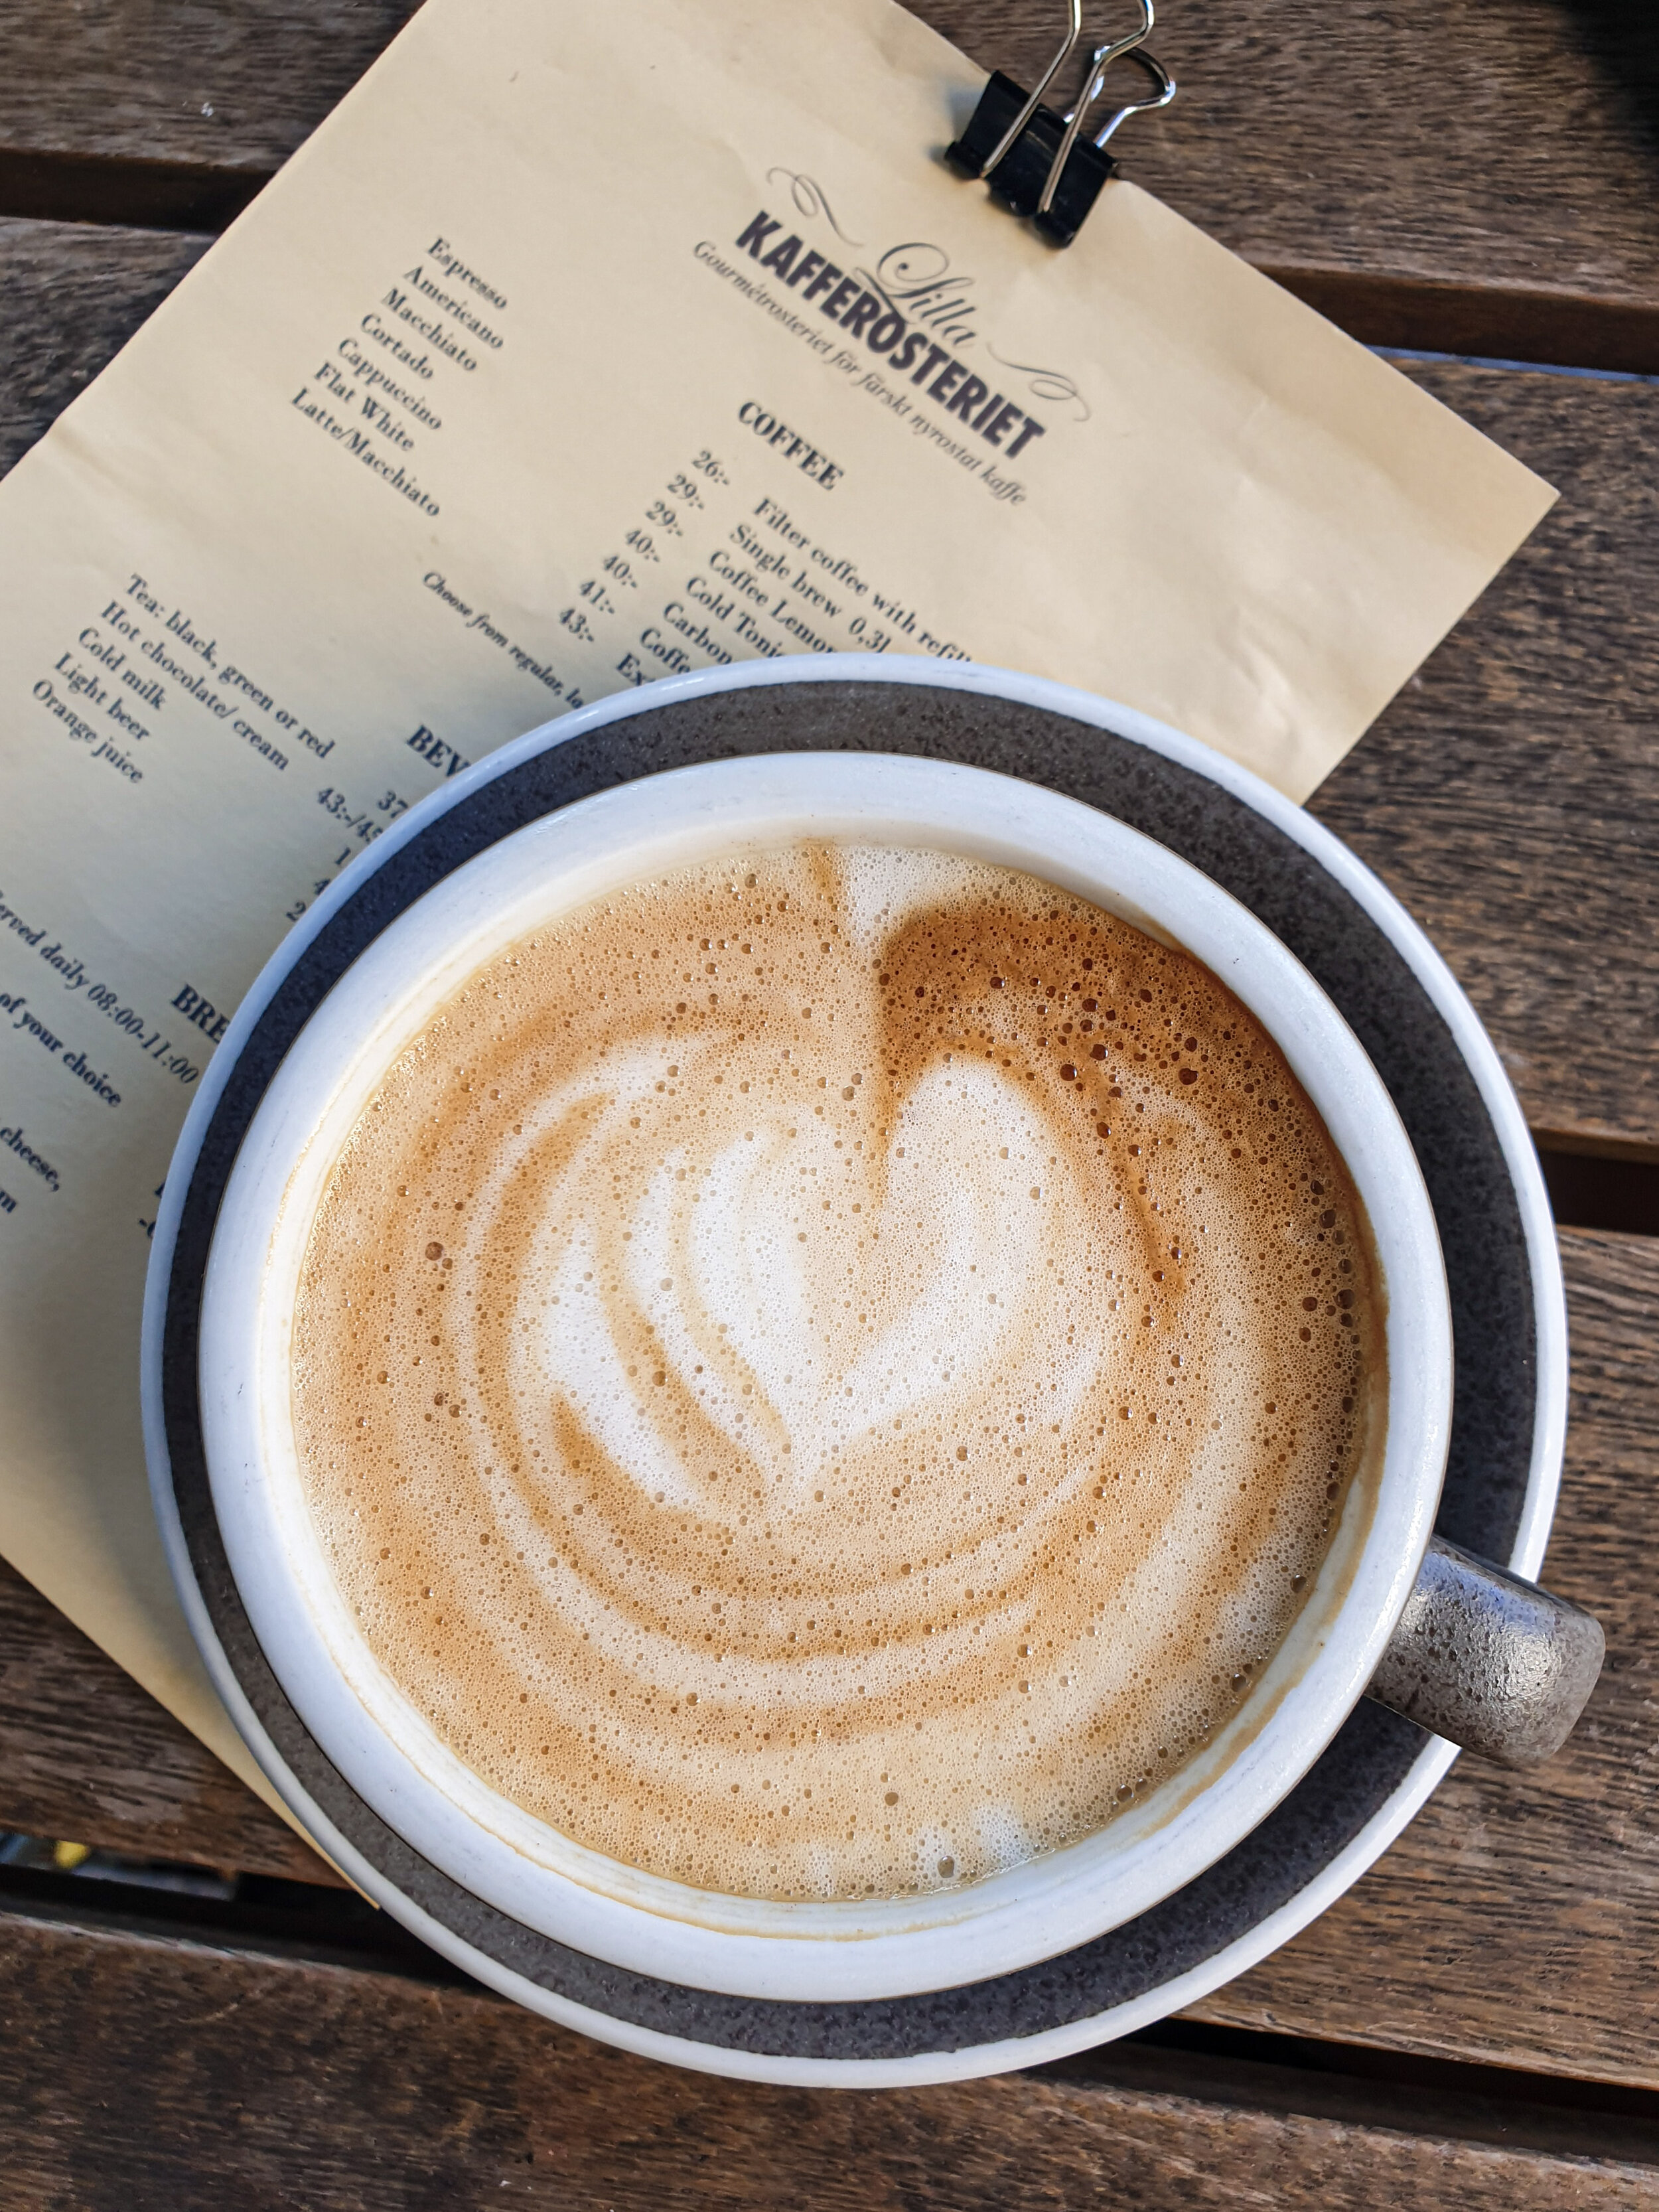 Another stop on your coffee guide in Malmö is Lilla Kafferosteriet.